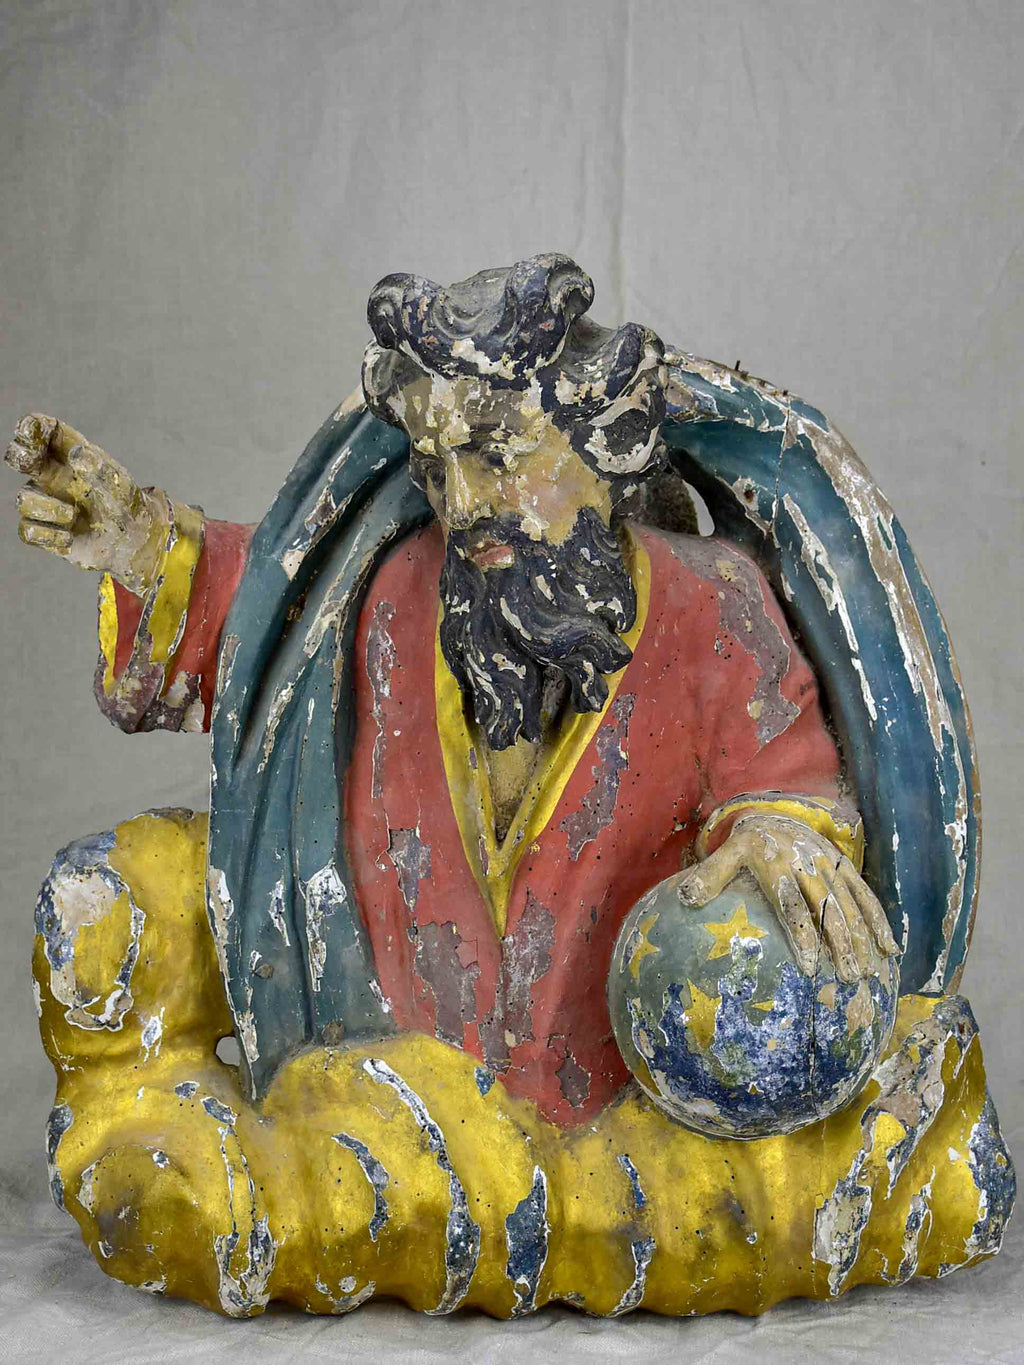 Antique sculpture of Christ from a church